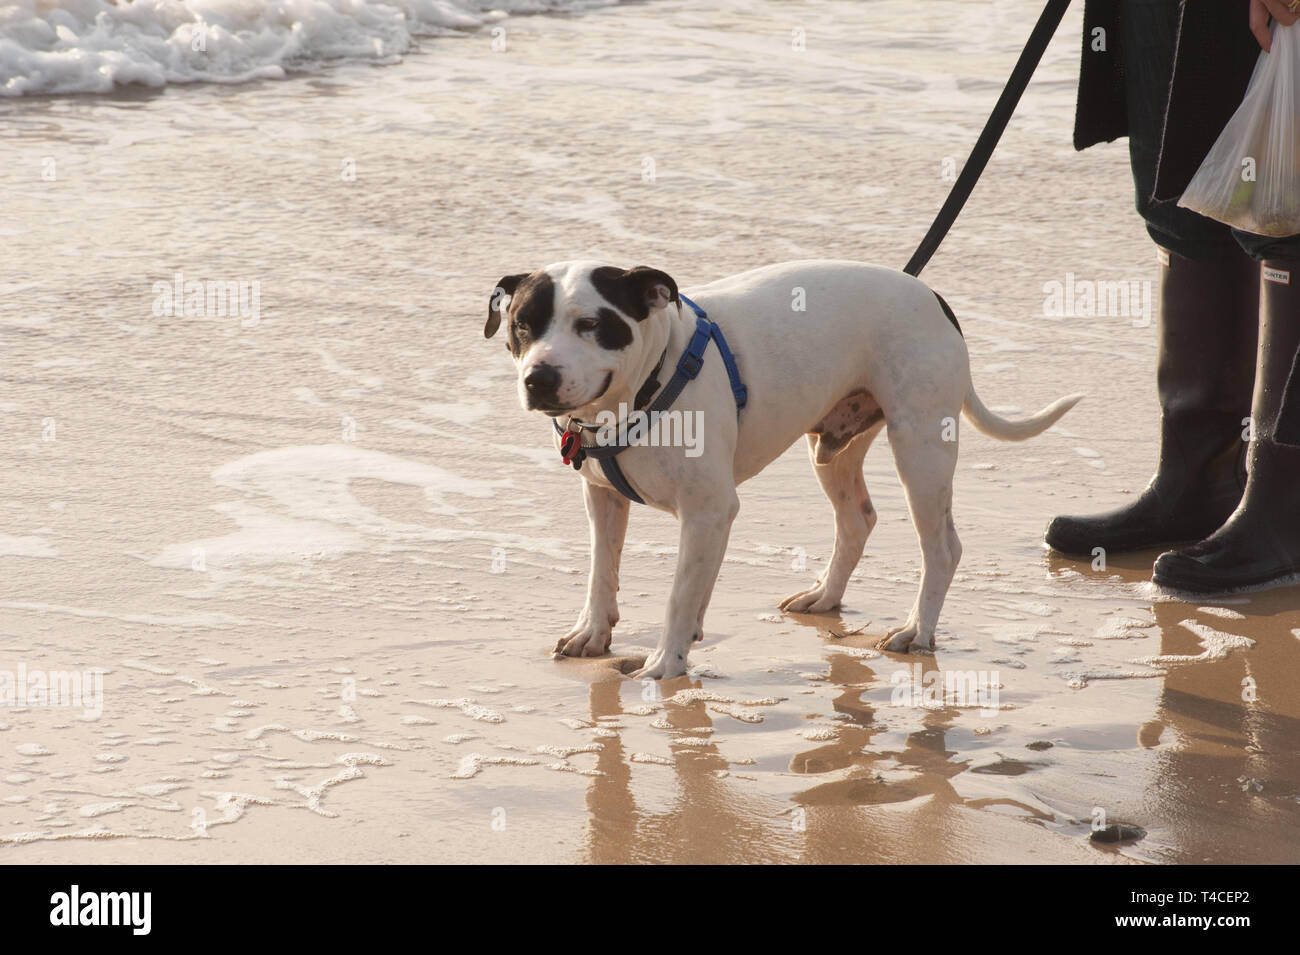 Dog in the sea - Stock Image